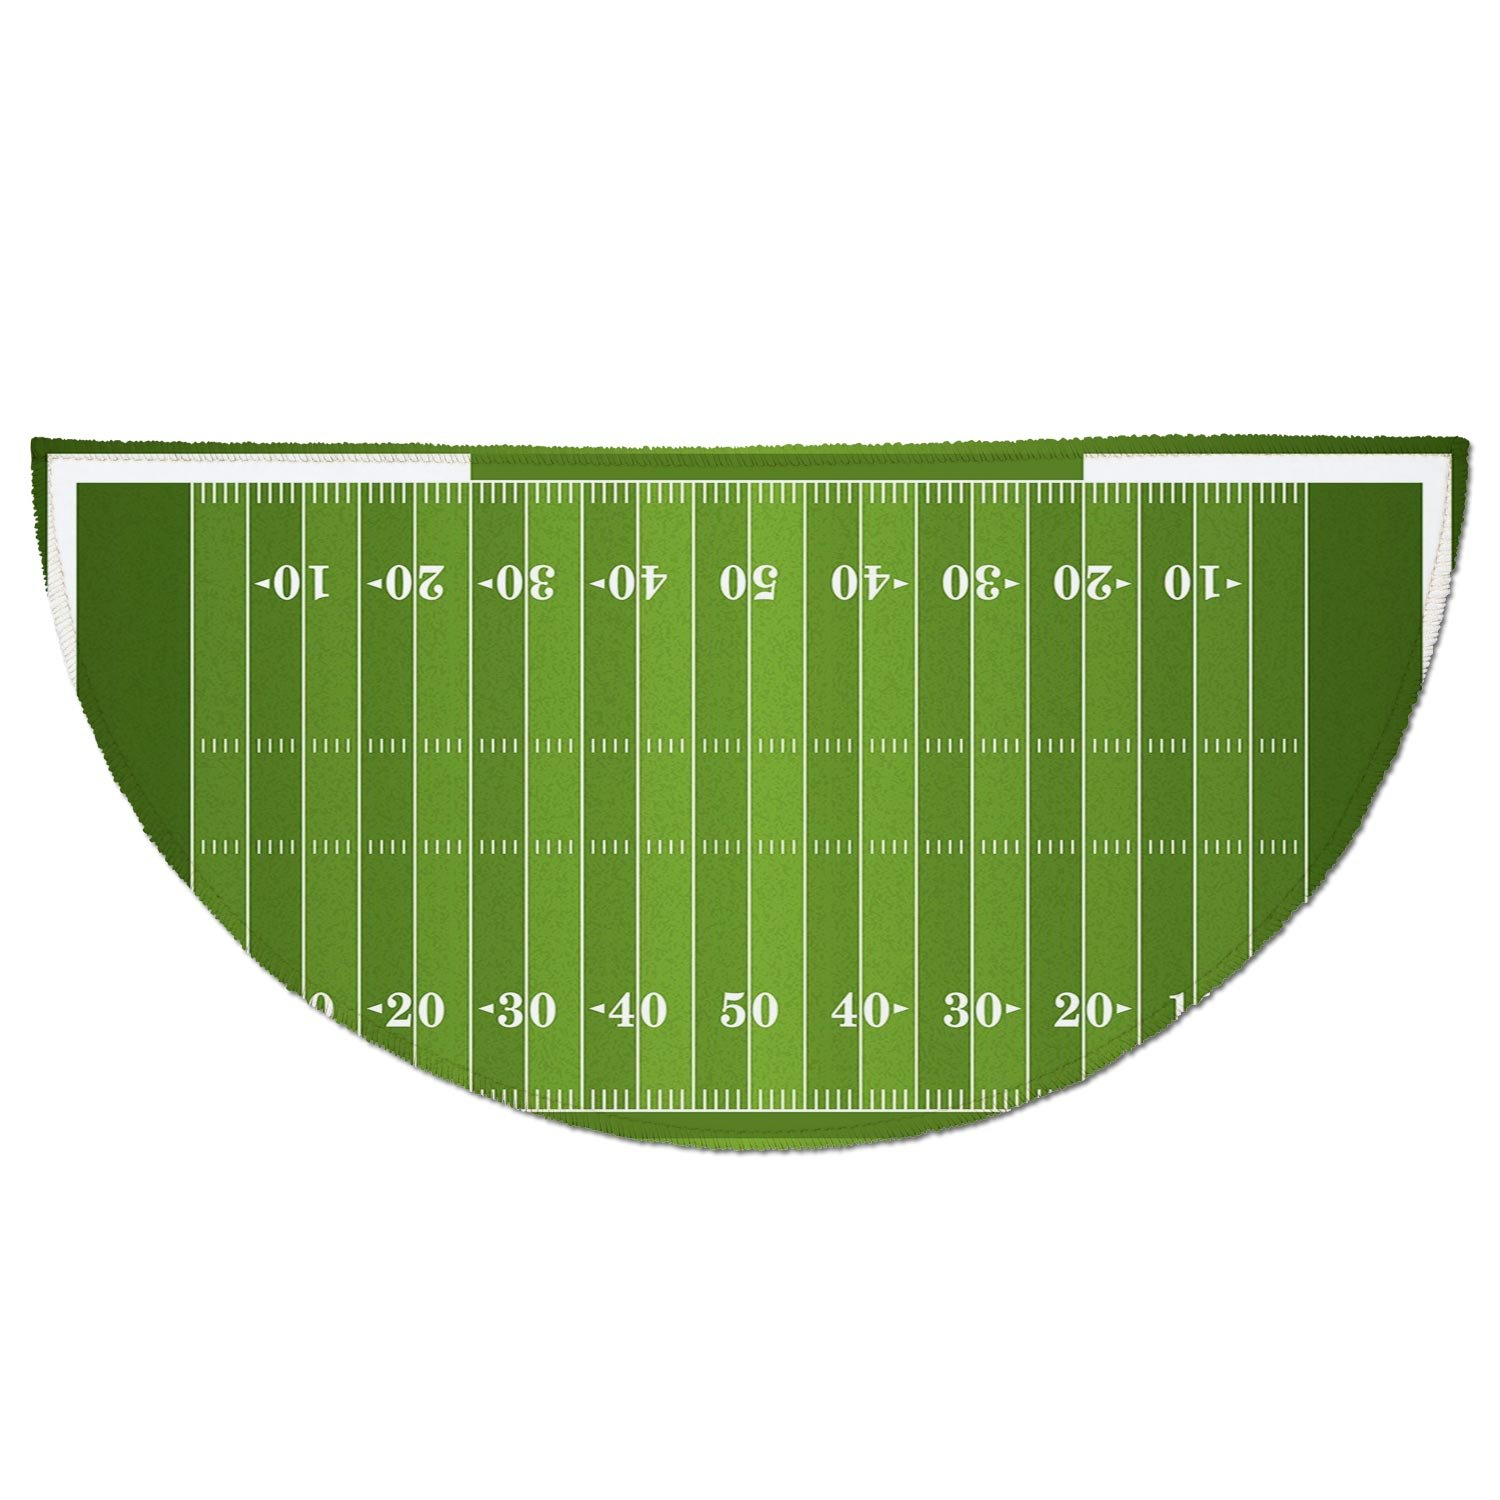 Half Round Door Mat Entrance Rug Floor Mats,Football,Sports Field in Green Gridiron Yard Competitive Games College Teamwork Superbowl,Green White,Garage Entry Carpet Decor for House Patio Grass Water